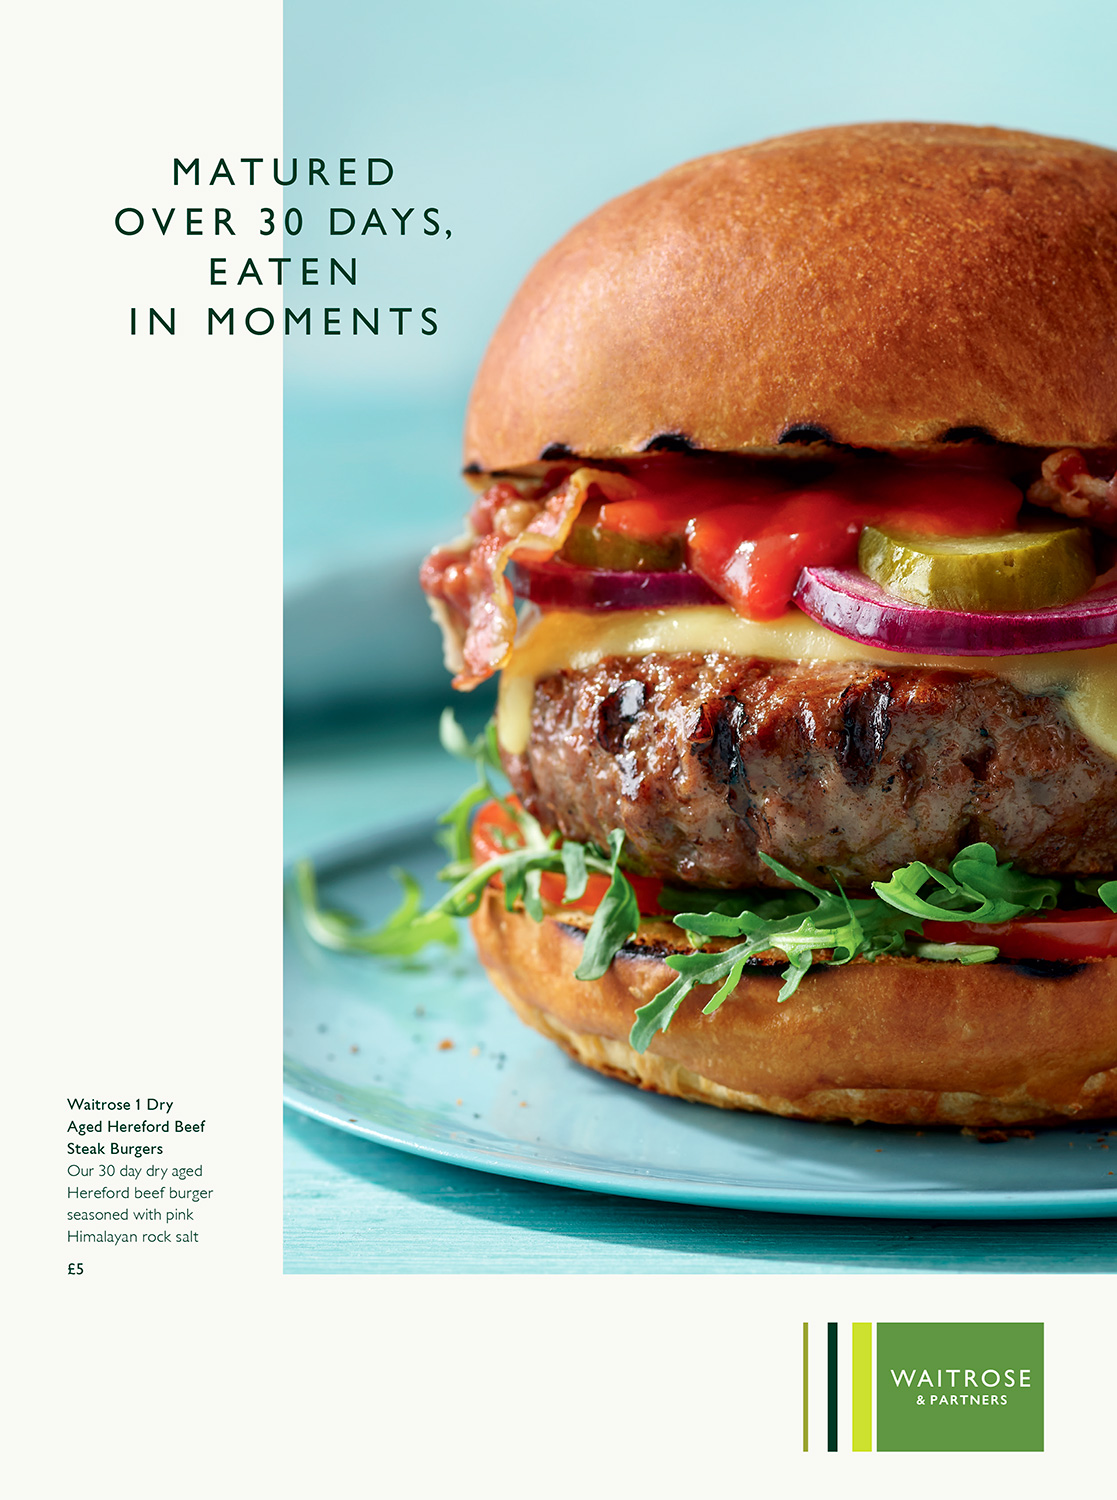 Waitrose Summer Burger - London food photographer